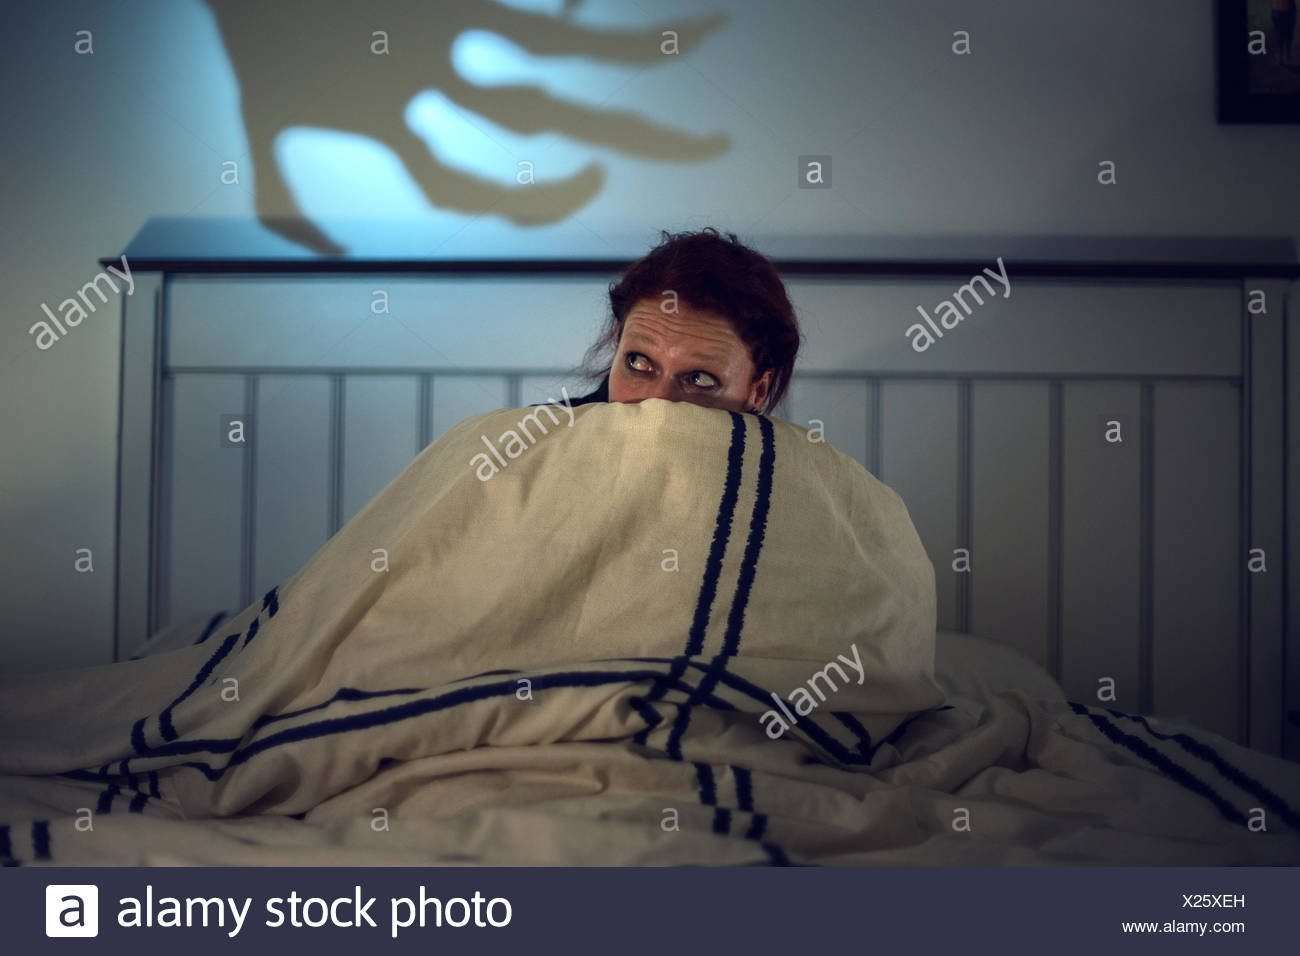 Frightened woman in bed, creepy shadow of a skeleton hand at back - Stock Image